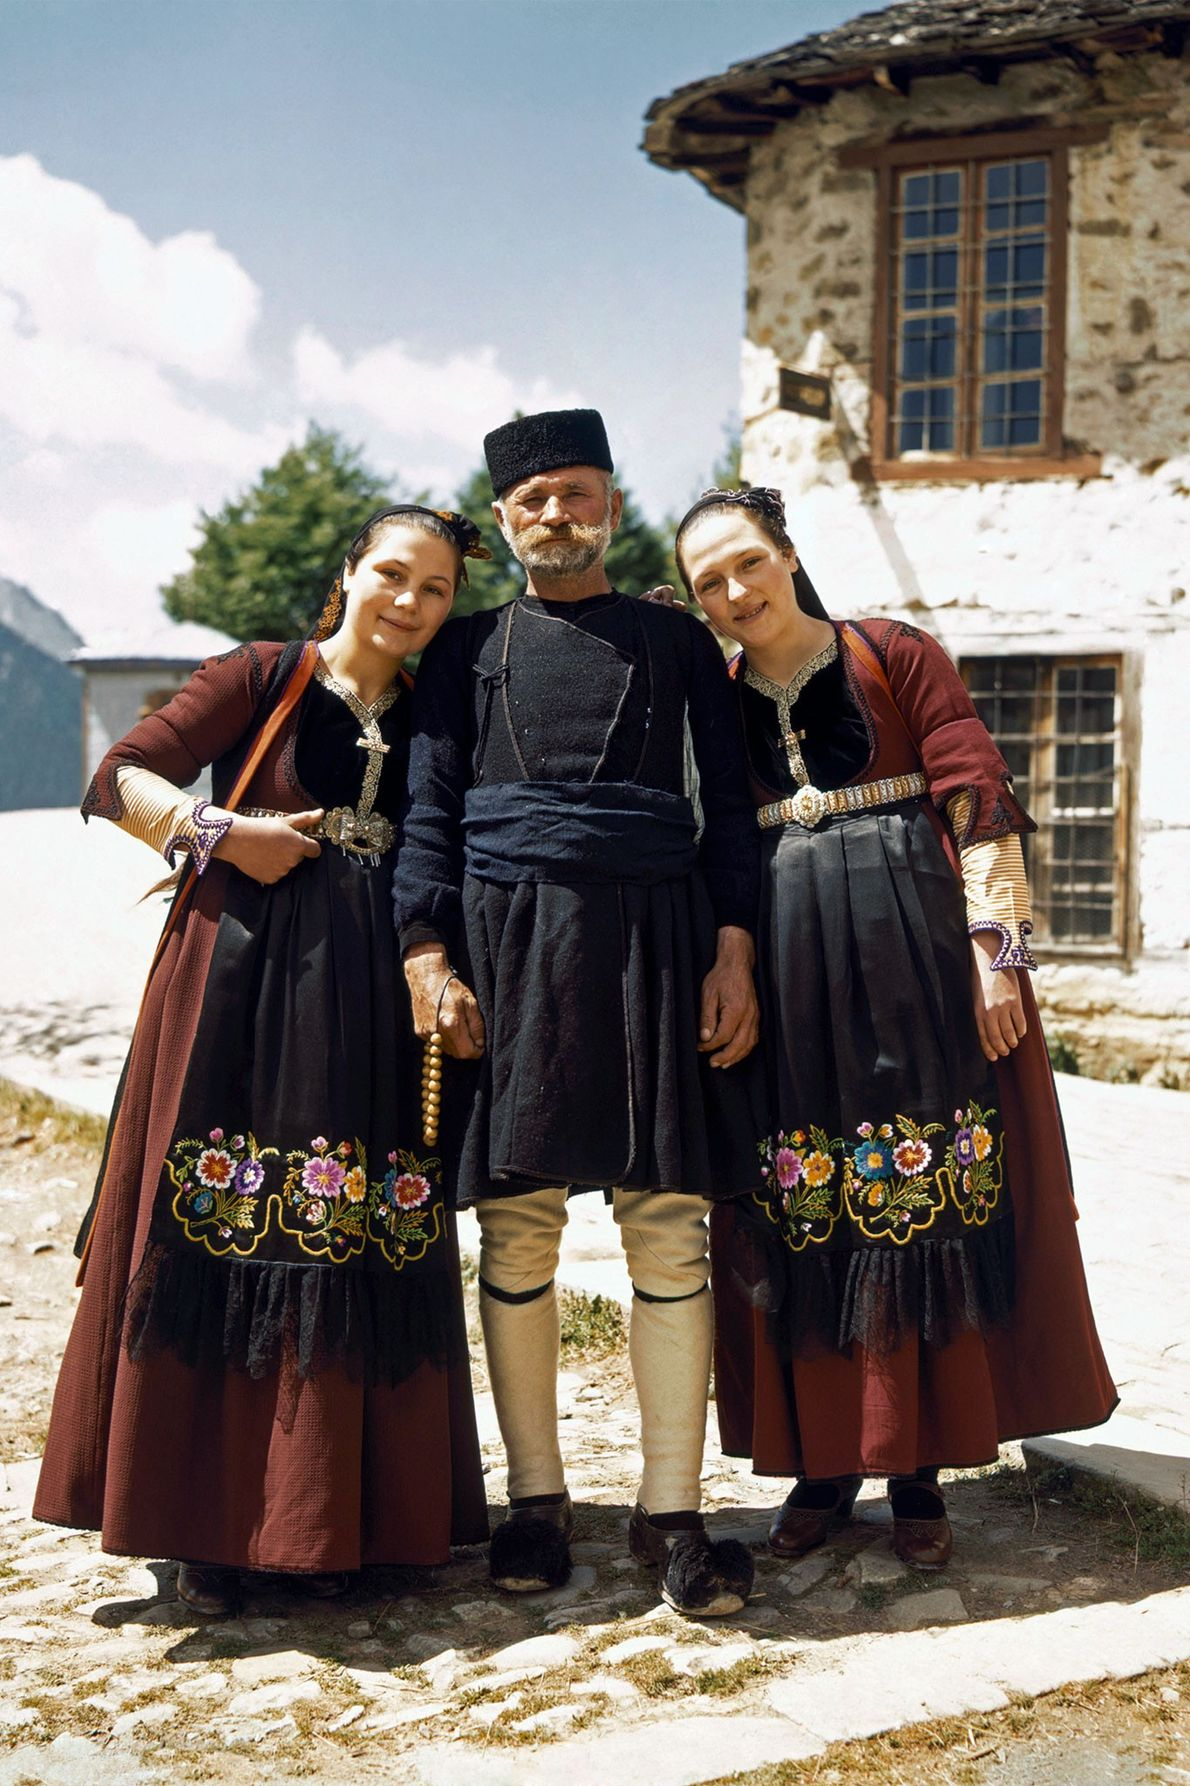 Two daughters in traditional clothing stand next to their father, a shepherd, in Metsovo, Greece.